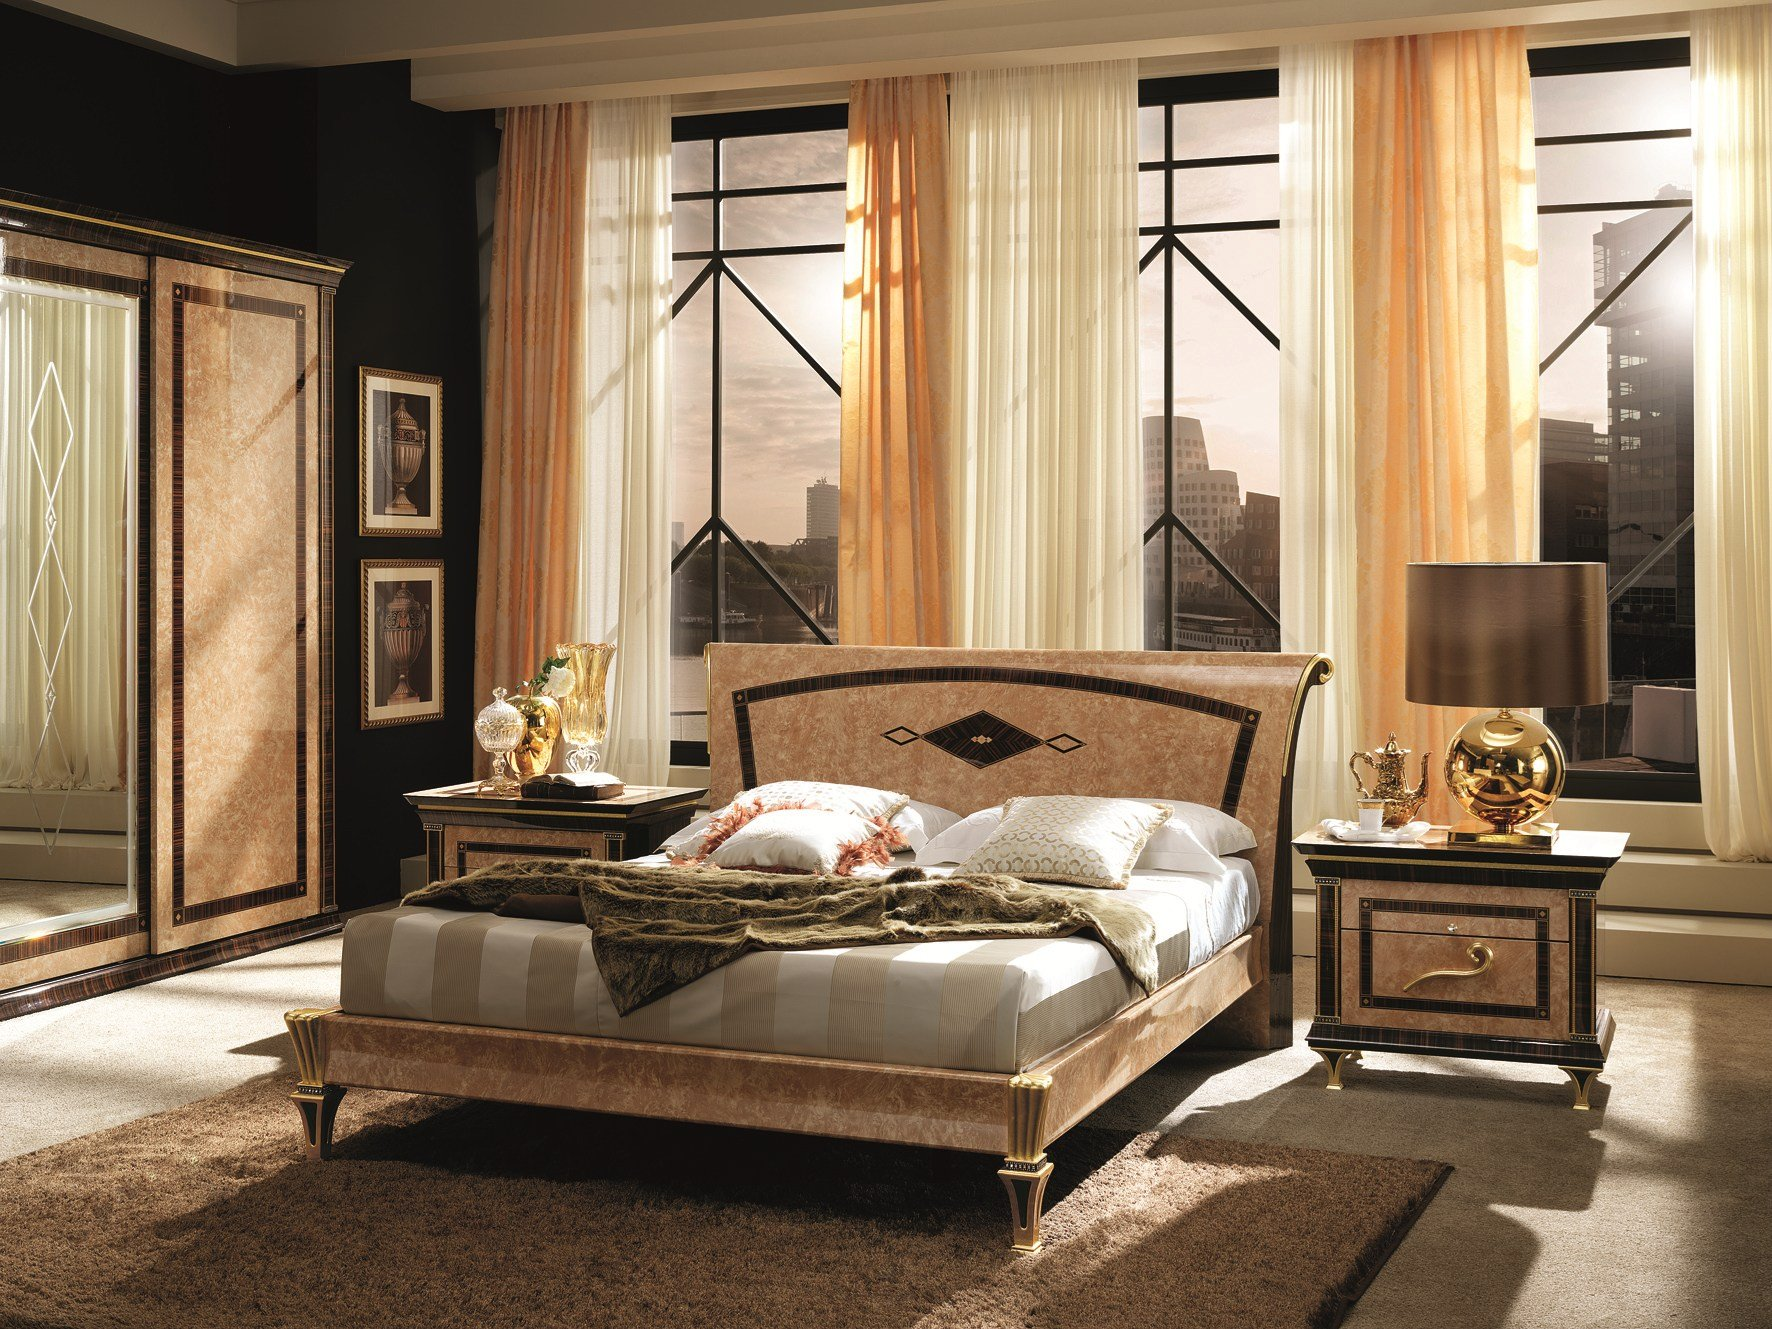 d coration chambre art nouveau. Black Bedroom Furniture Sets. Home Design Ideas